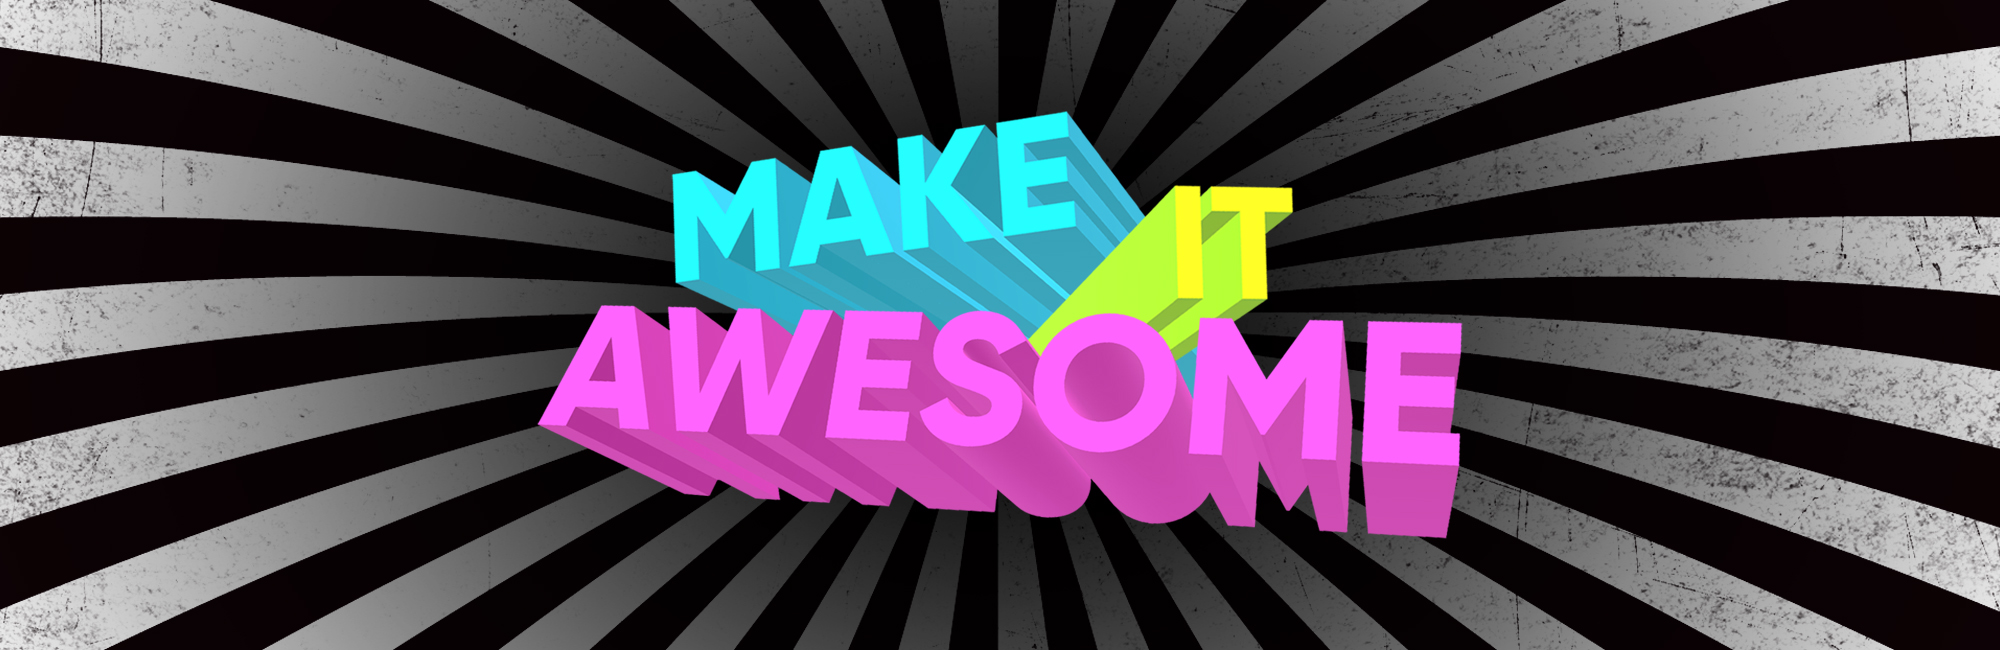 Make It Awesome - Web - Message Header